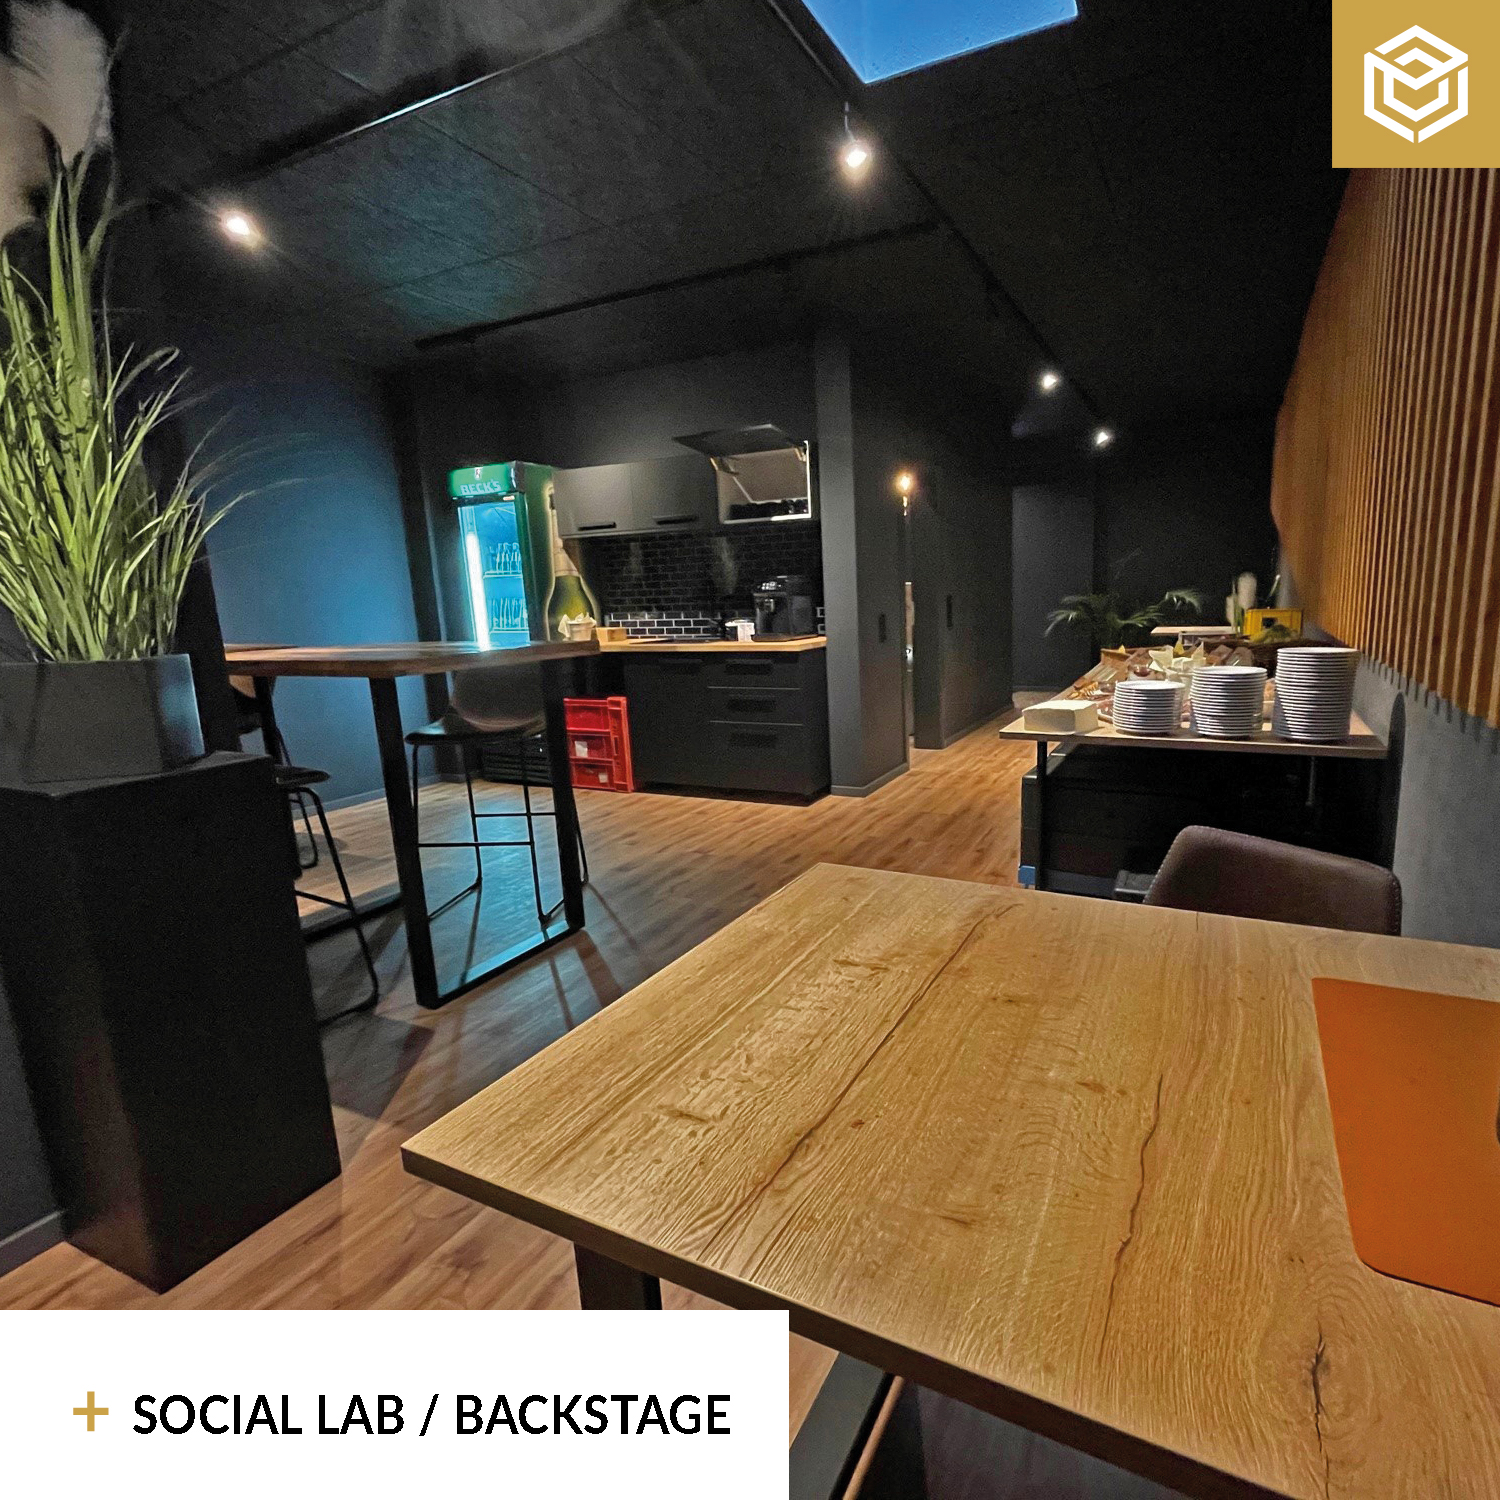 Social Lab Backstage